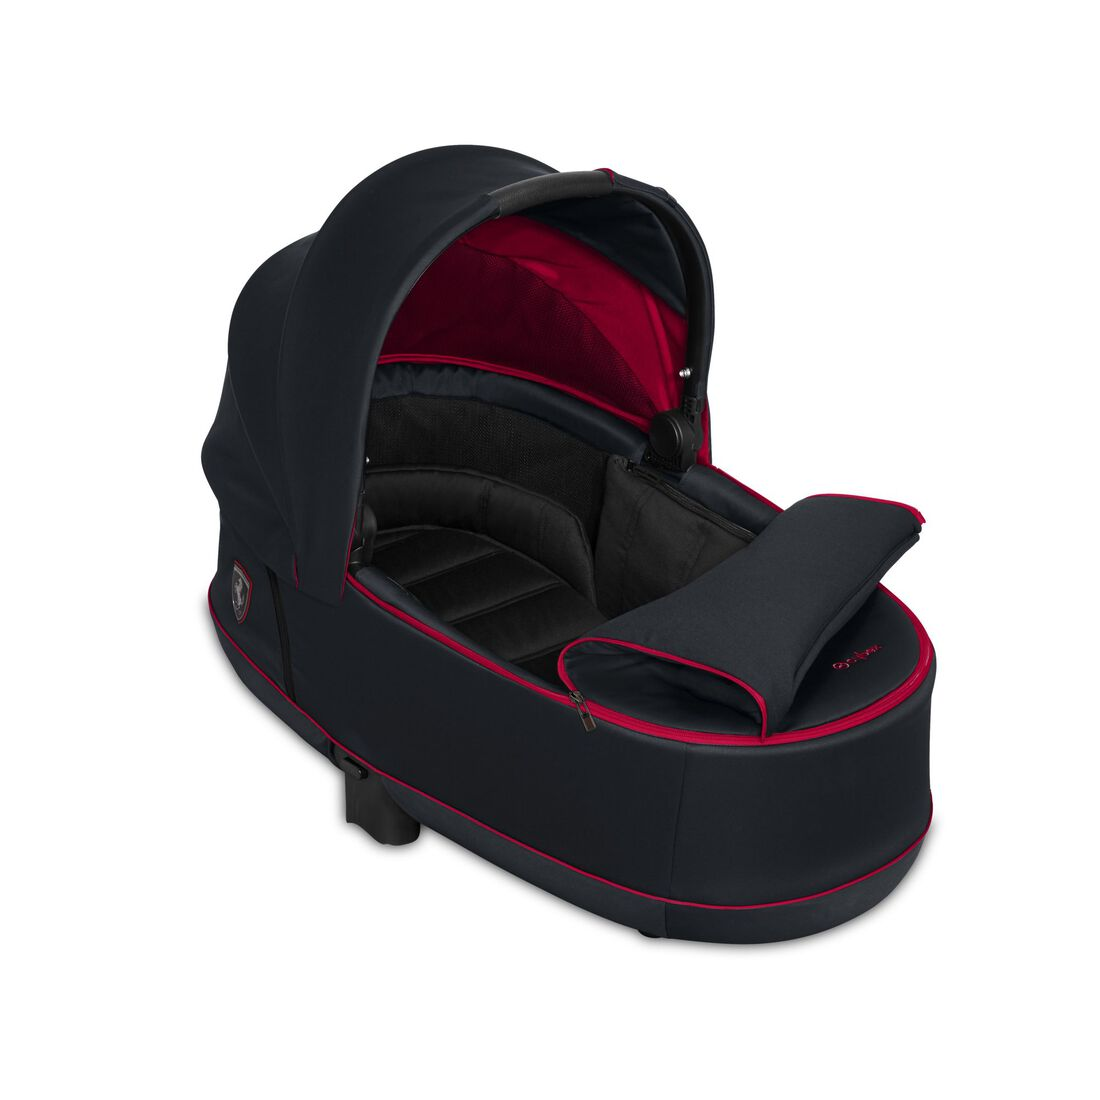 CYBEX Priam Lux Carry Cot - Ferrari Victory Black in Ferrari Victory Black large Bild 2